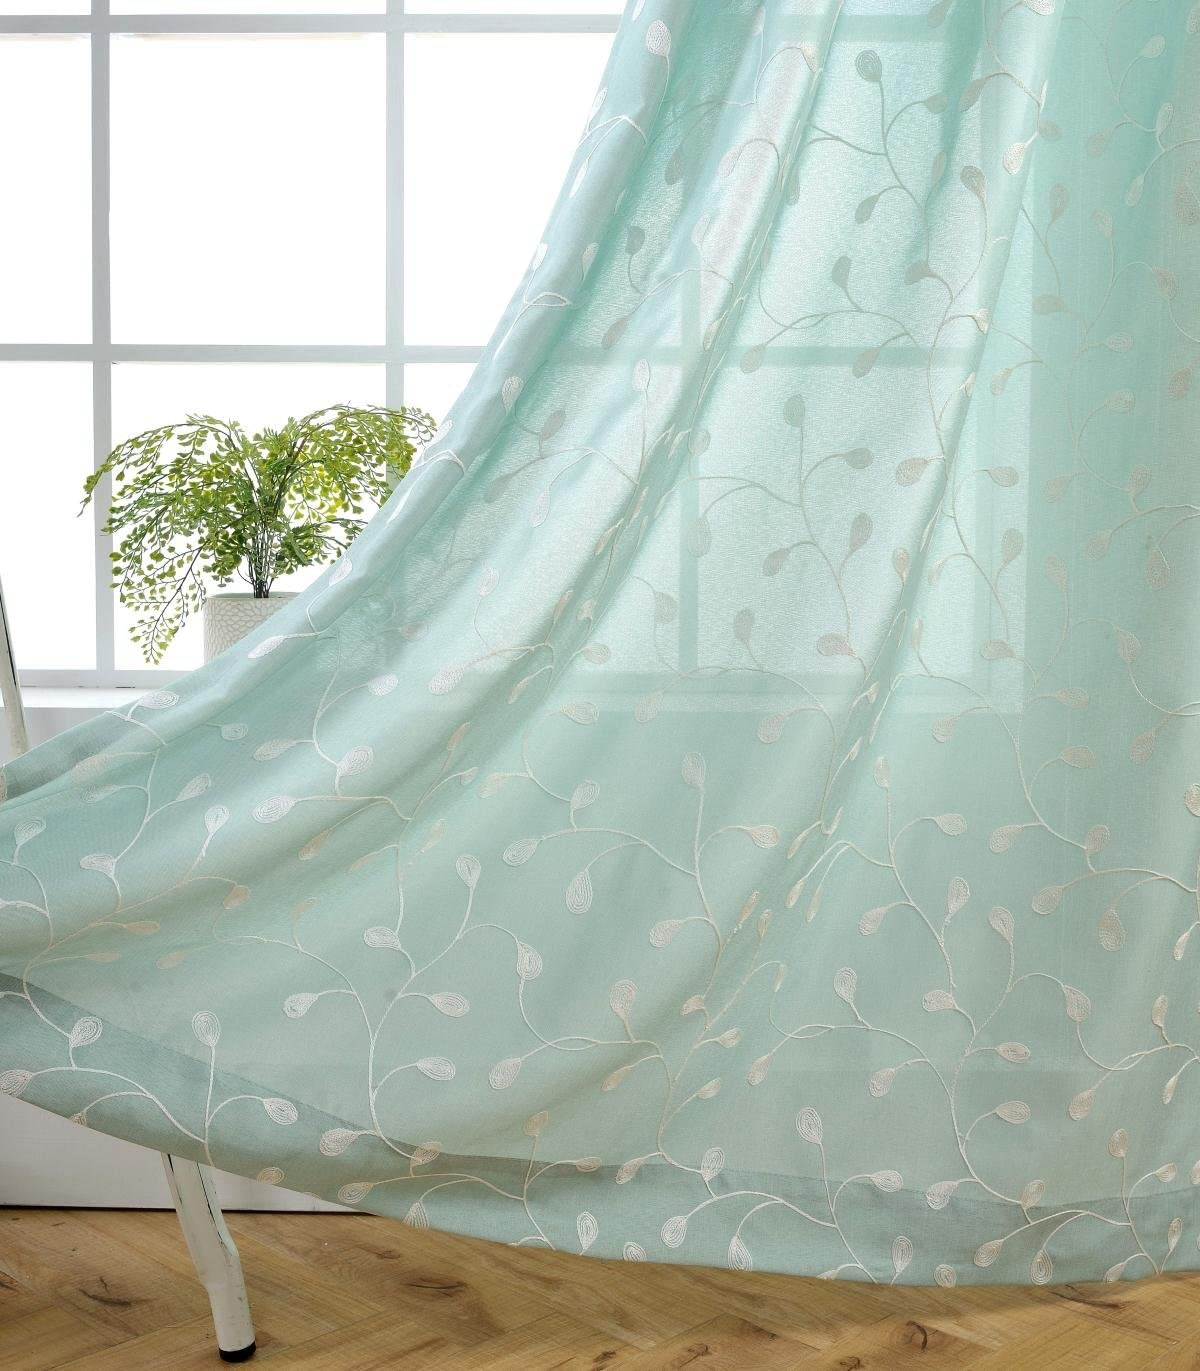 MIUCO Floral Embroidery Semi Sheer Curtains Faux Linen Grommet Panels for Living Room 52 x 84 Inch 2 Panels Set, Subtle Green